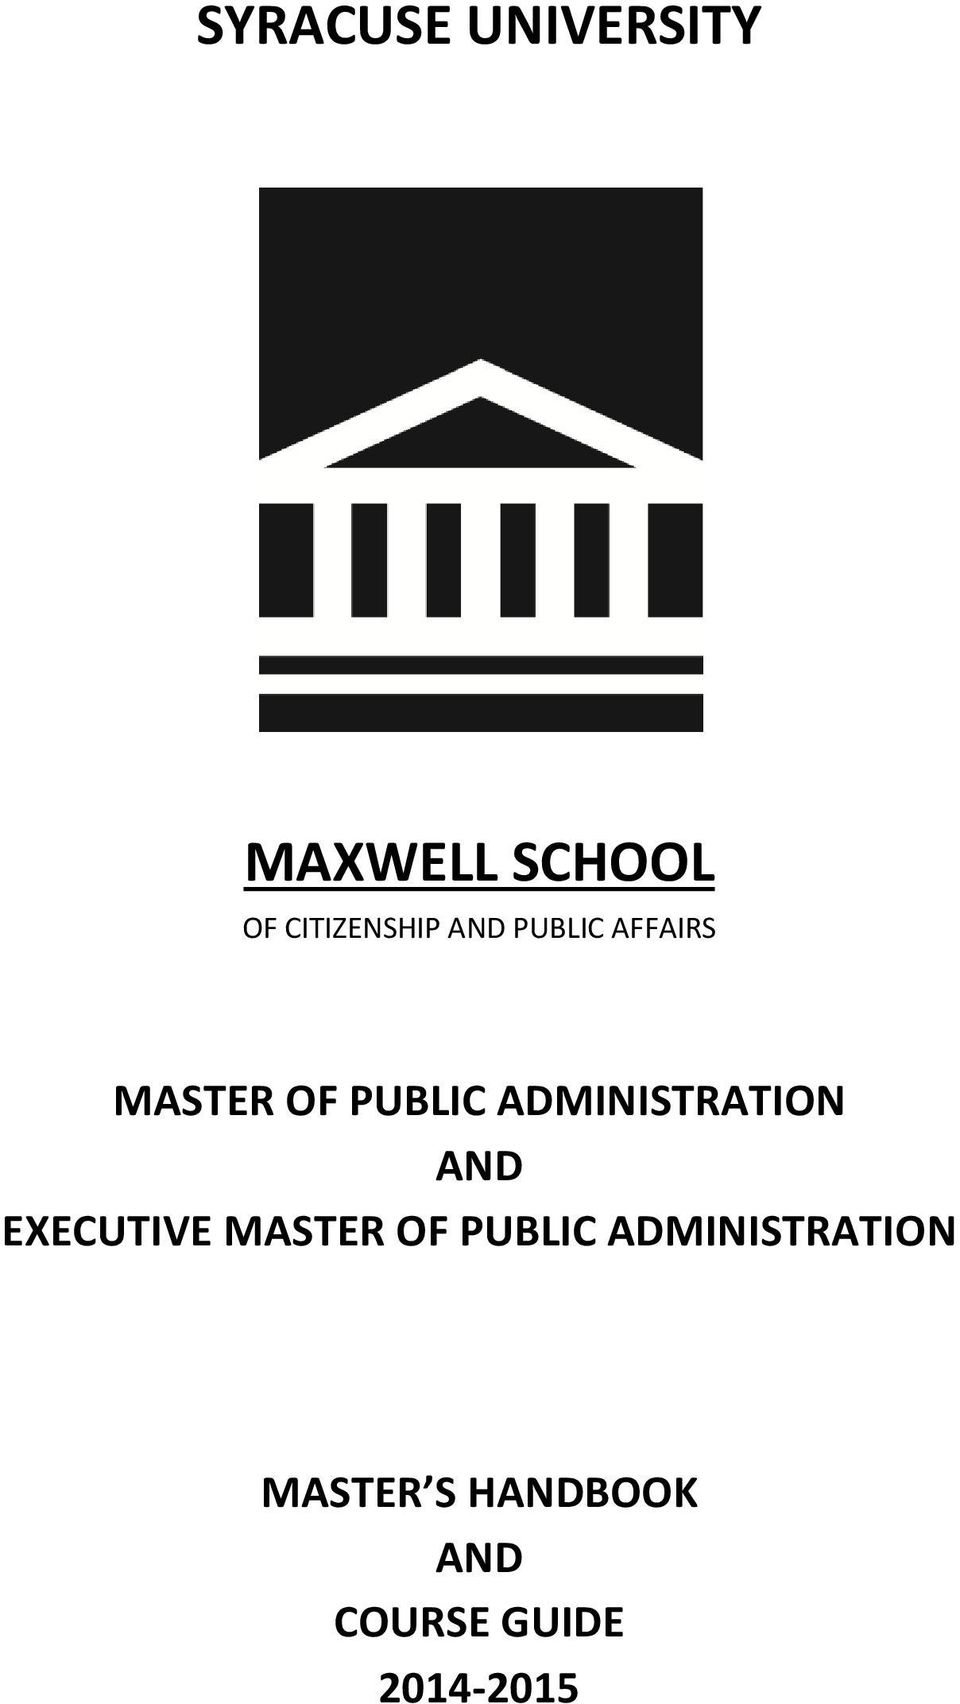 ADMINISTRATION AND EXECUTIVE MASTER OF PUBLIC